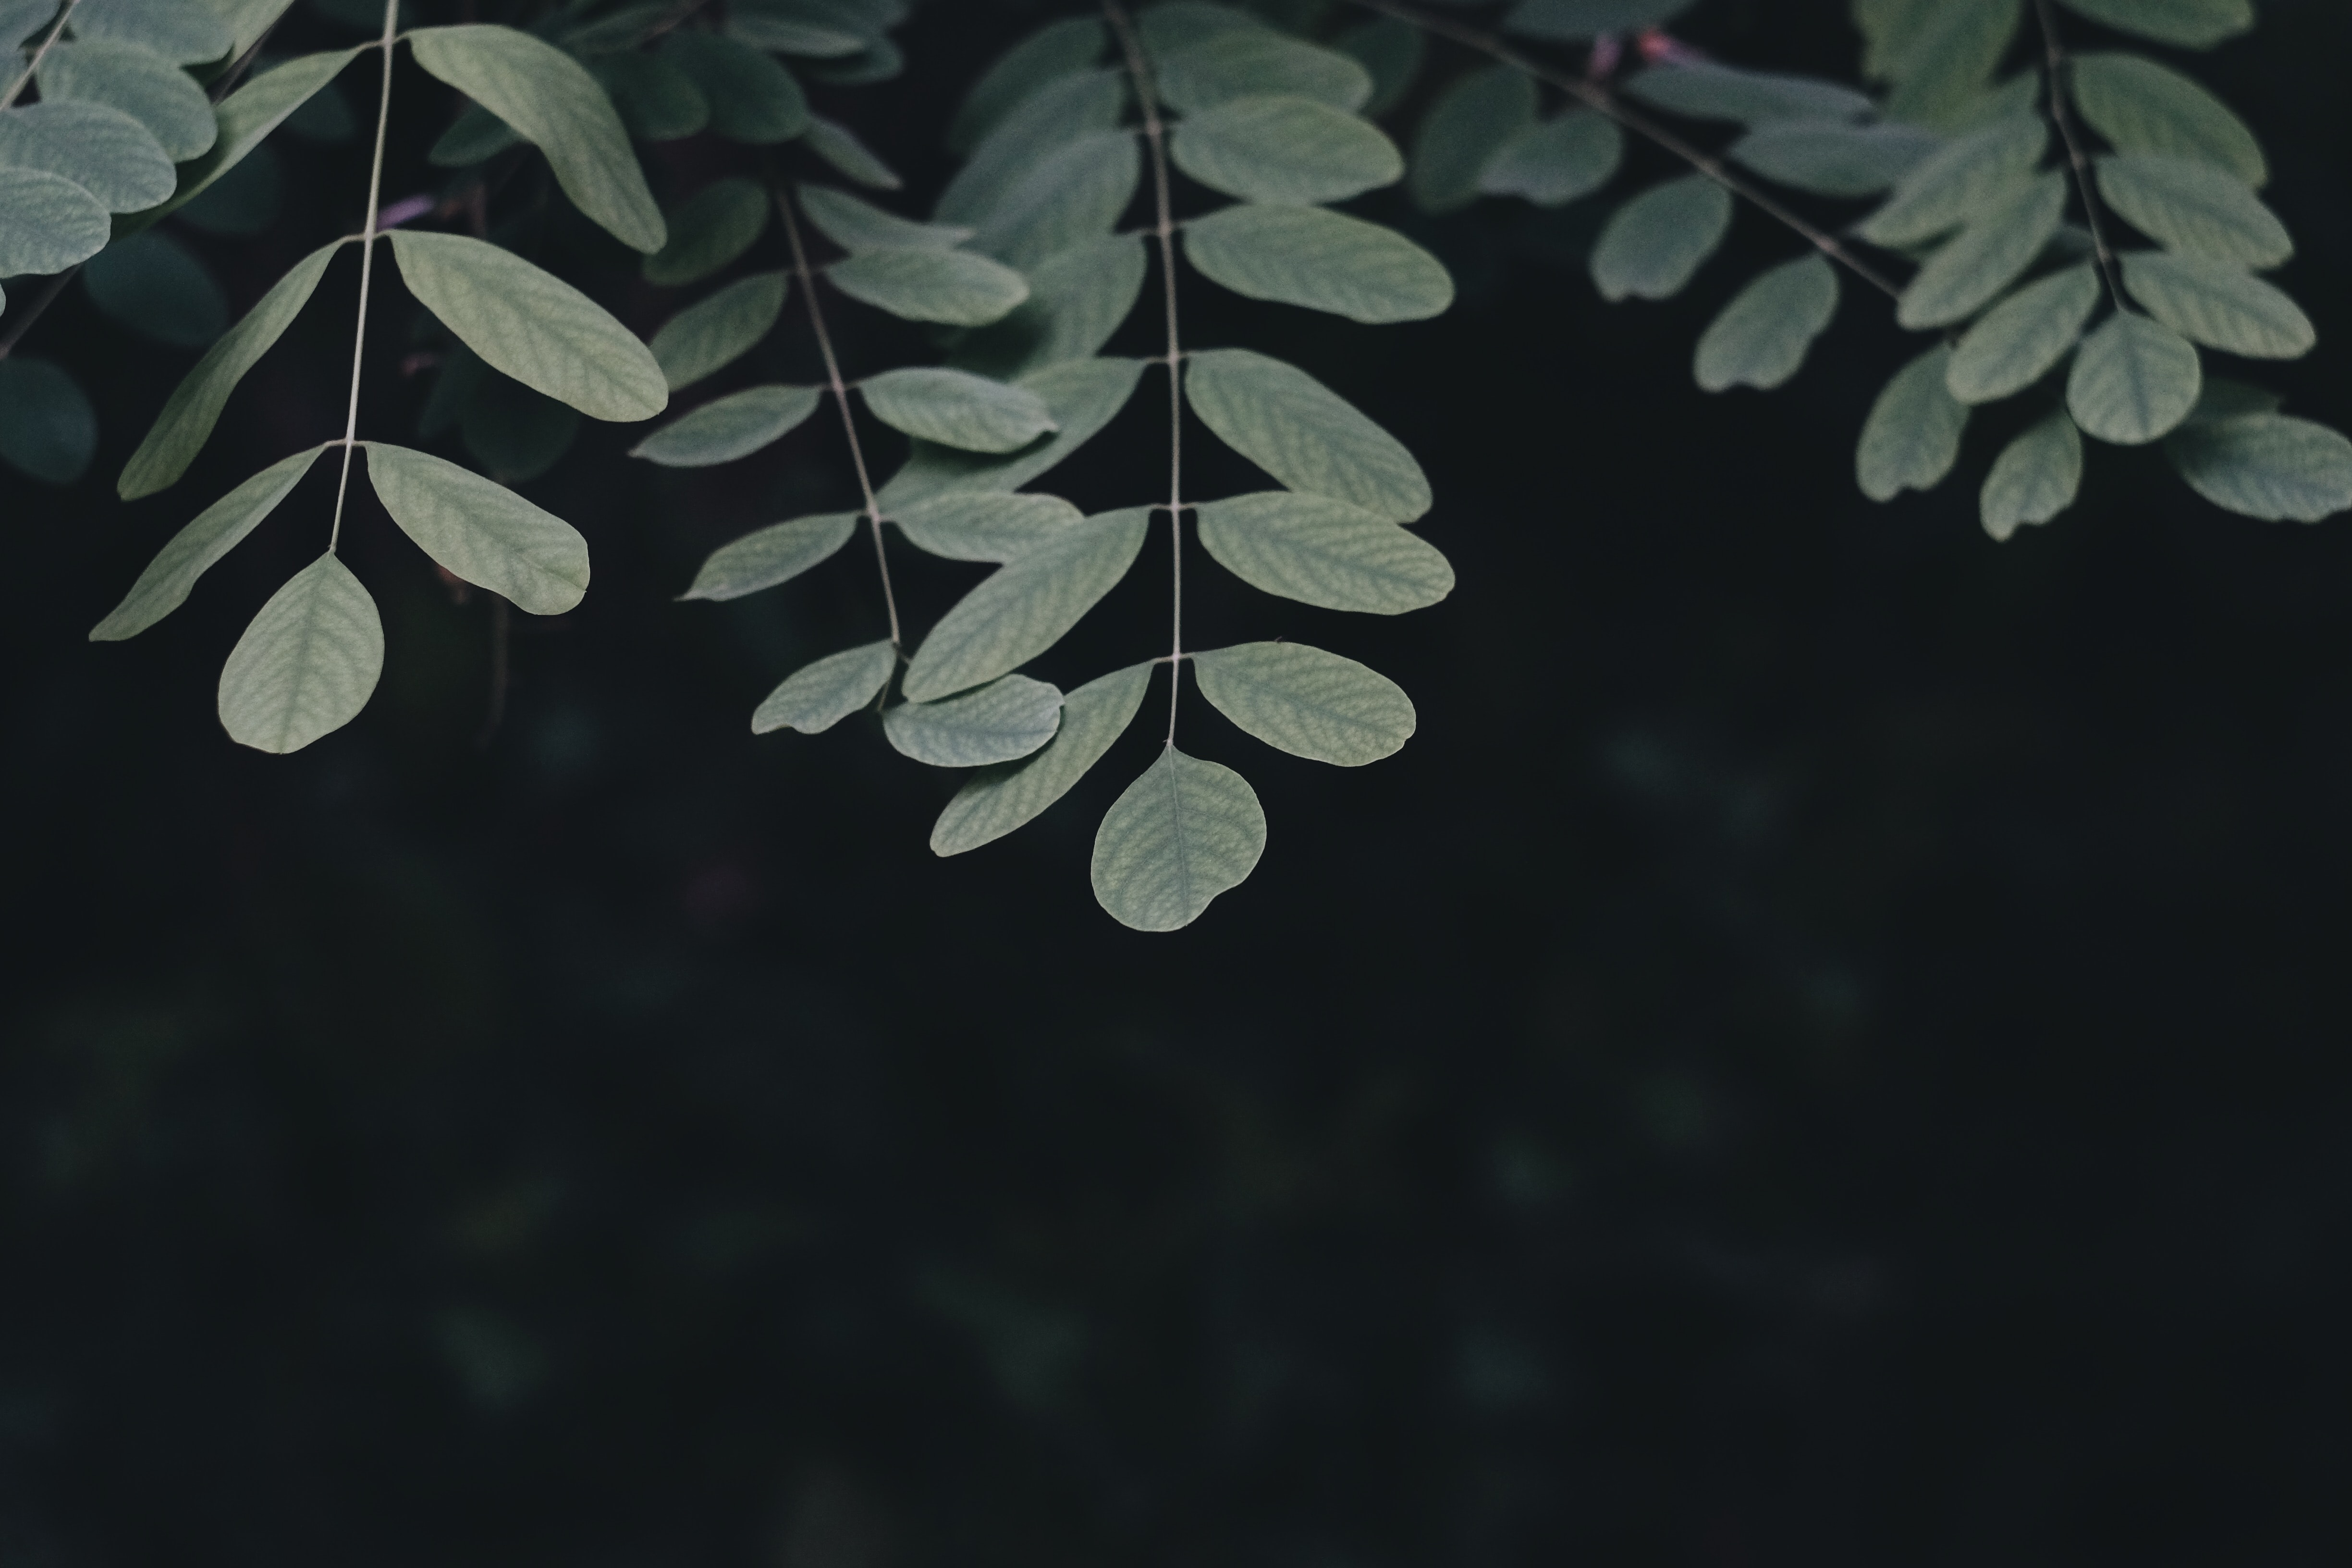 green leafed plant in closeup shot